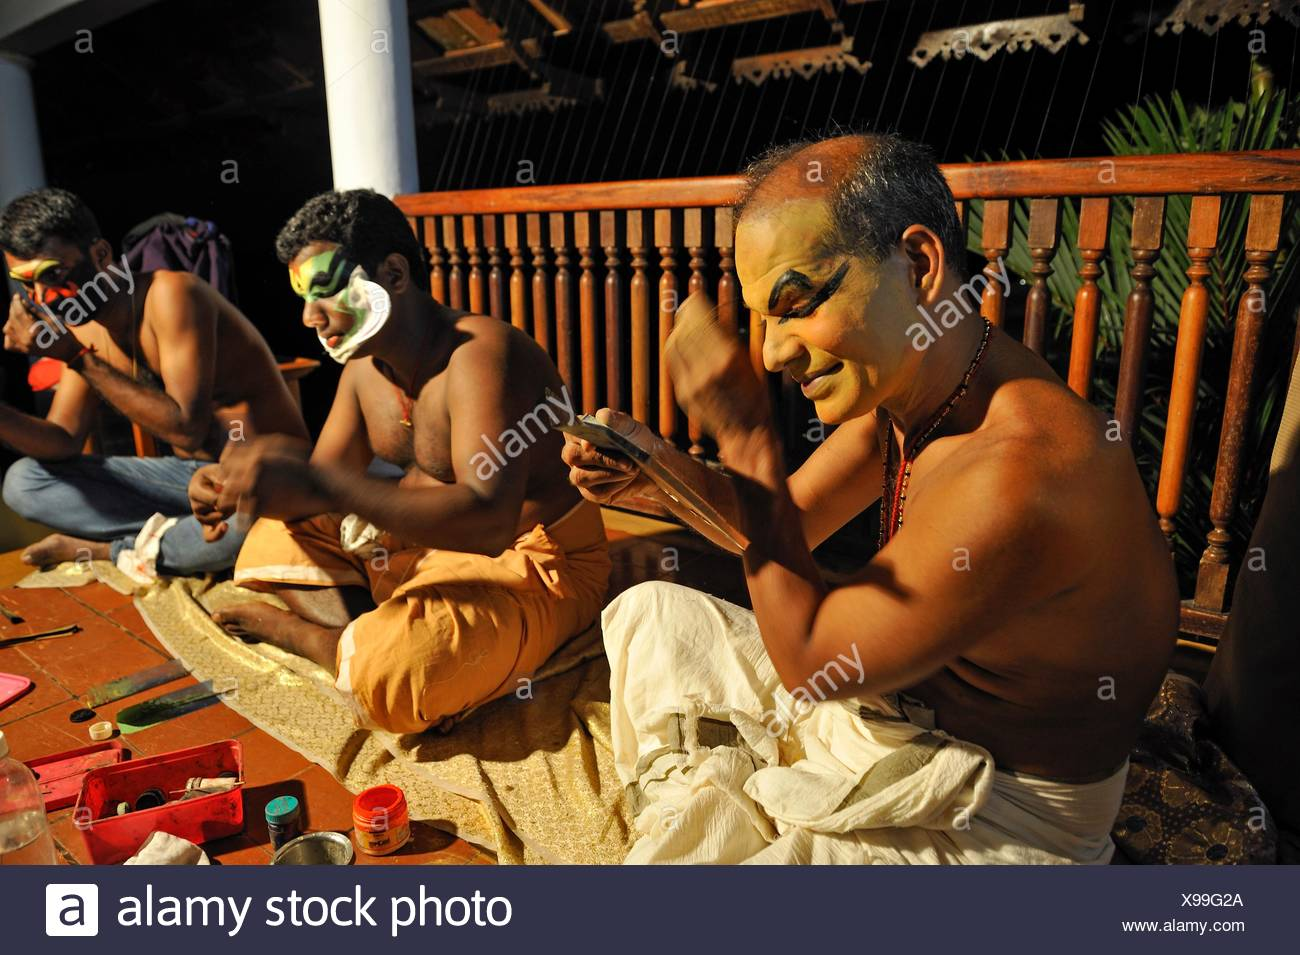 Kathakali performers during making up before a show at the Kumarakom Lake Resort hotel, Kerala state, South India, Asia. Stock Photo